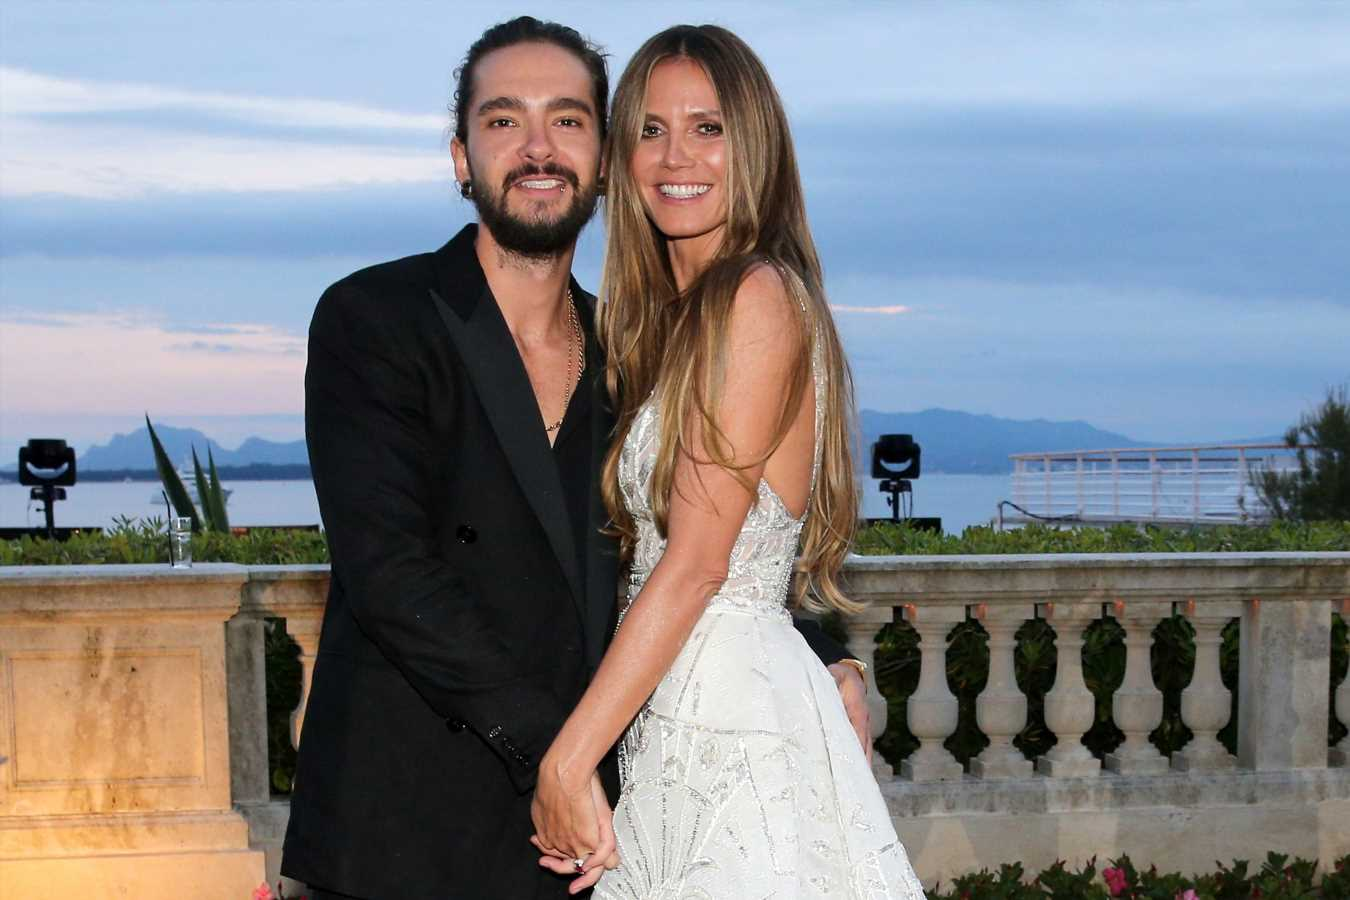 Heidi Klum and Tom Kaulitz married in February after 2-month engagement